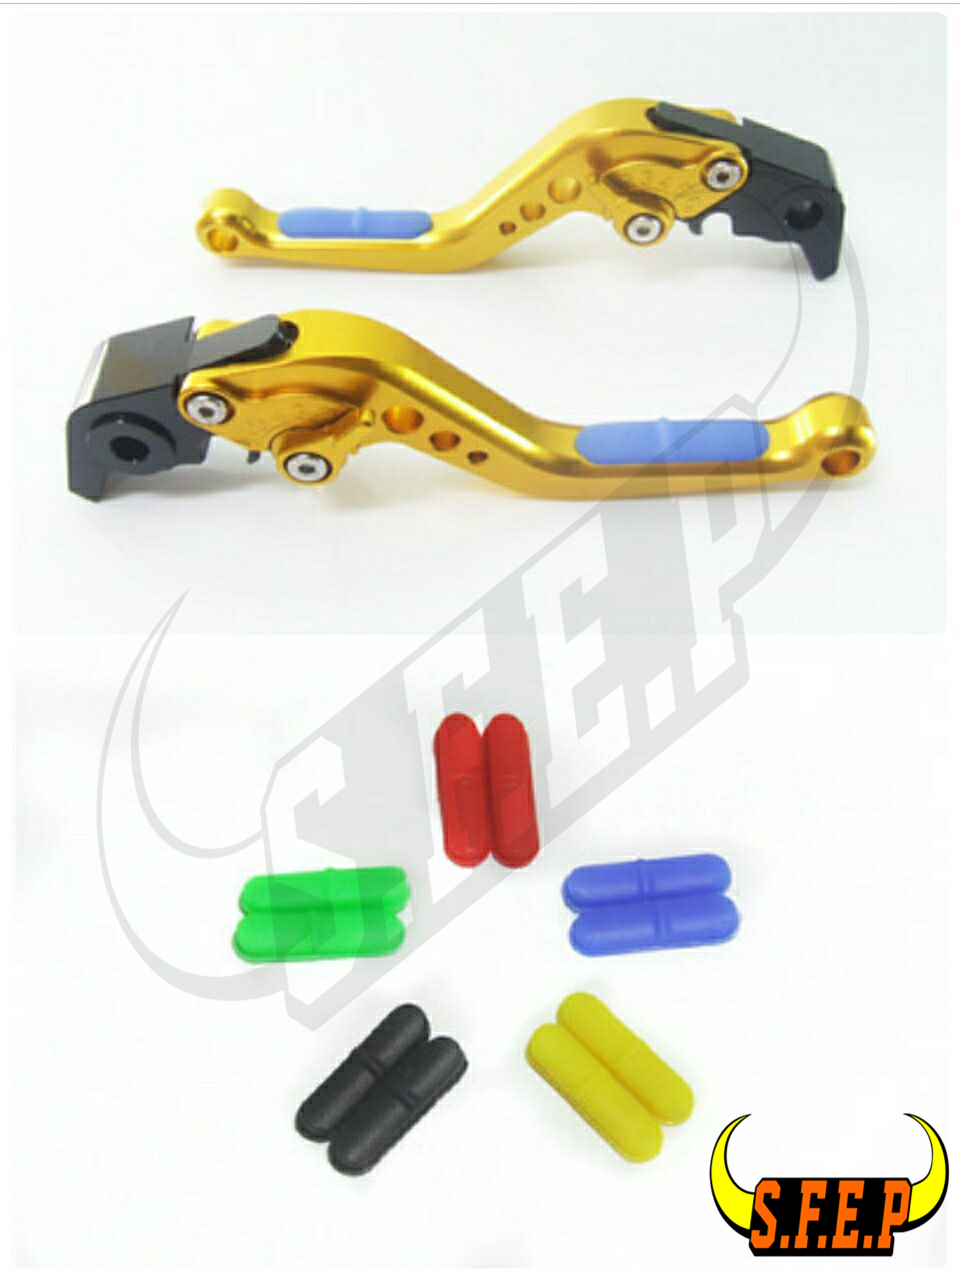 CNC Adjustable Motorcycle Brake and Clutch Levers with Anti-Slip For Triumph BOBBER 2017-2018